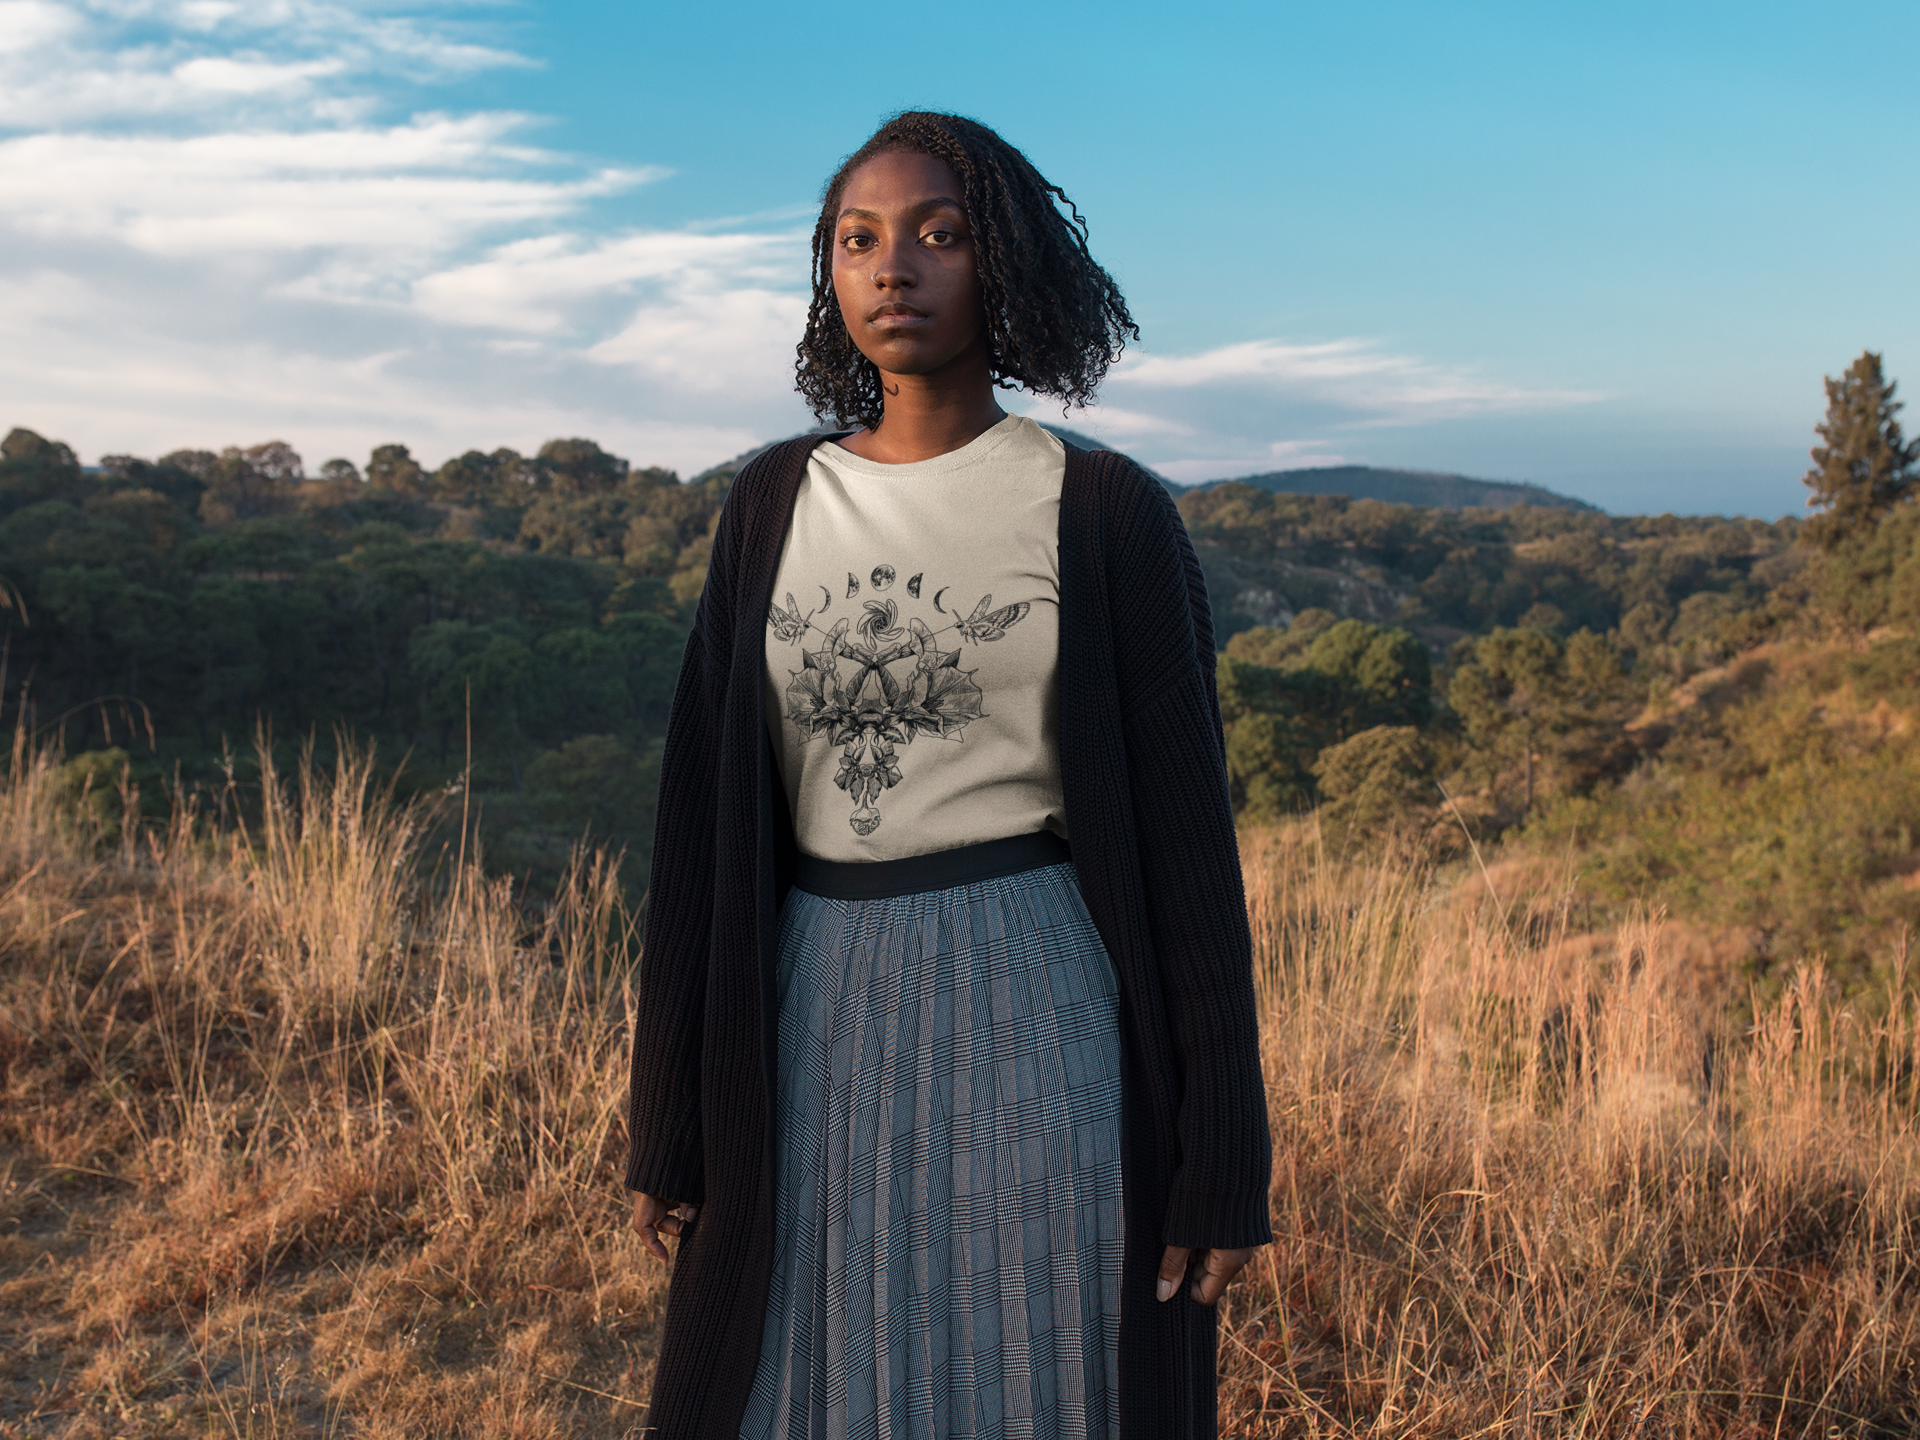 mockup-of-a-black-woman-wearing-a-tshirt-while-outdoors-on-the-mountains-a18514 copy.png